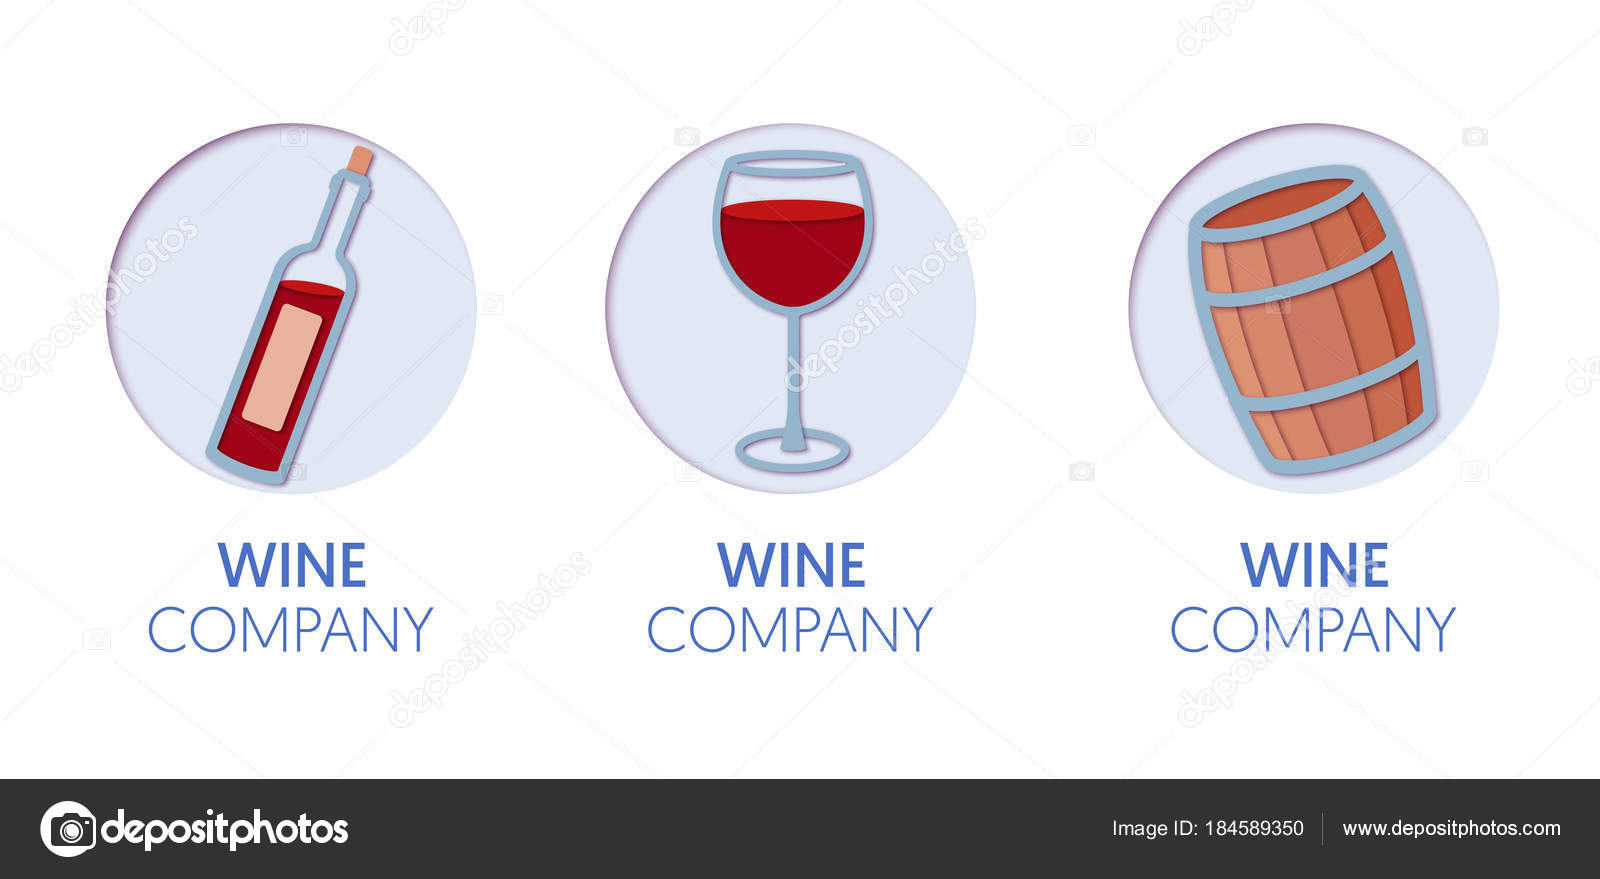 Paper cut out logo template set with wine origami winery symbols paper cut out logo template set with wine origami winery symbols for branding brochure biocorpaavc Gallery